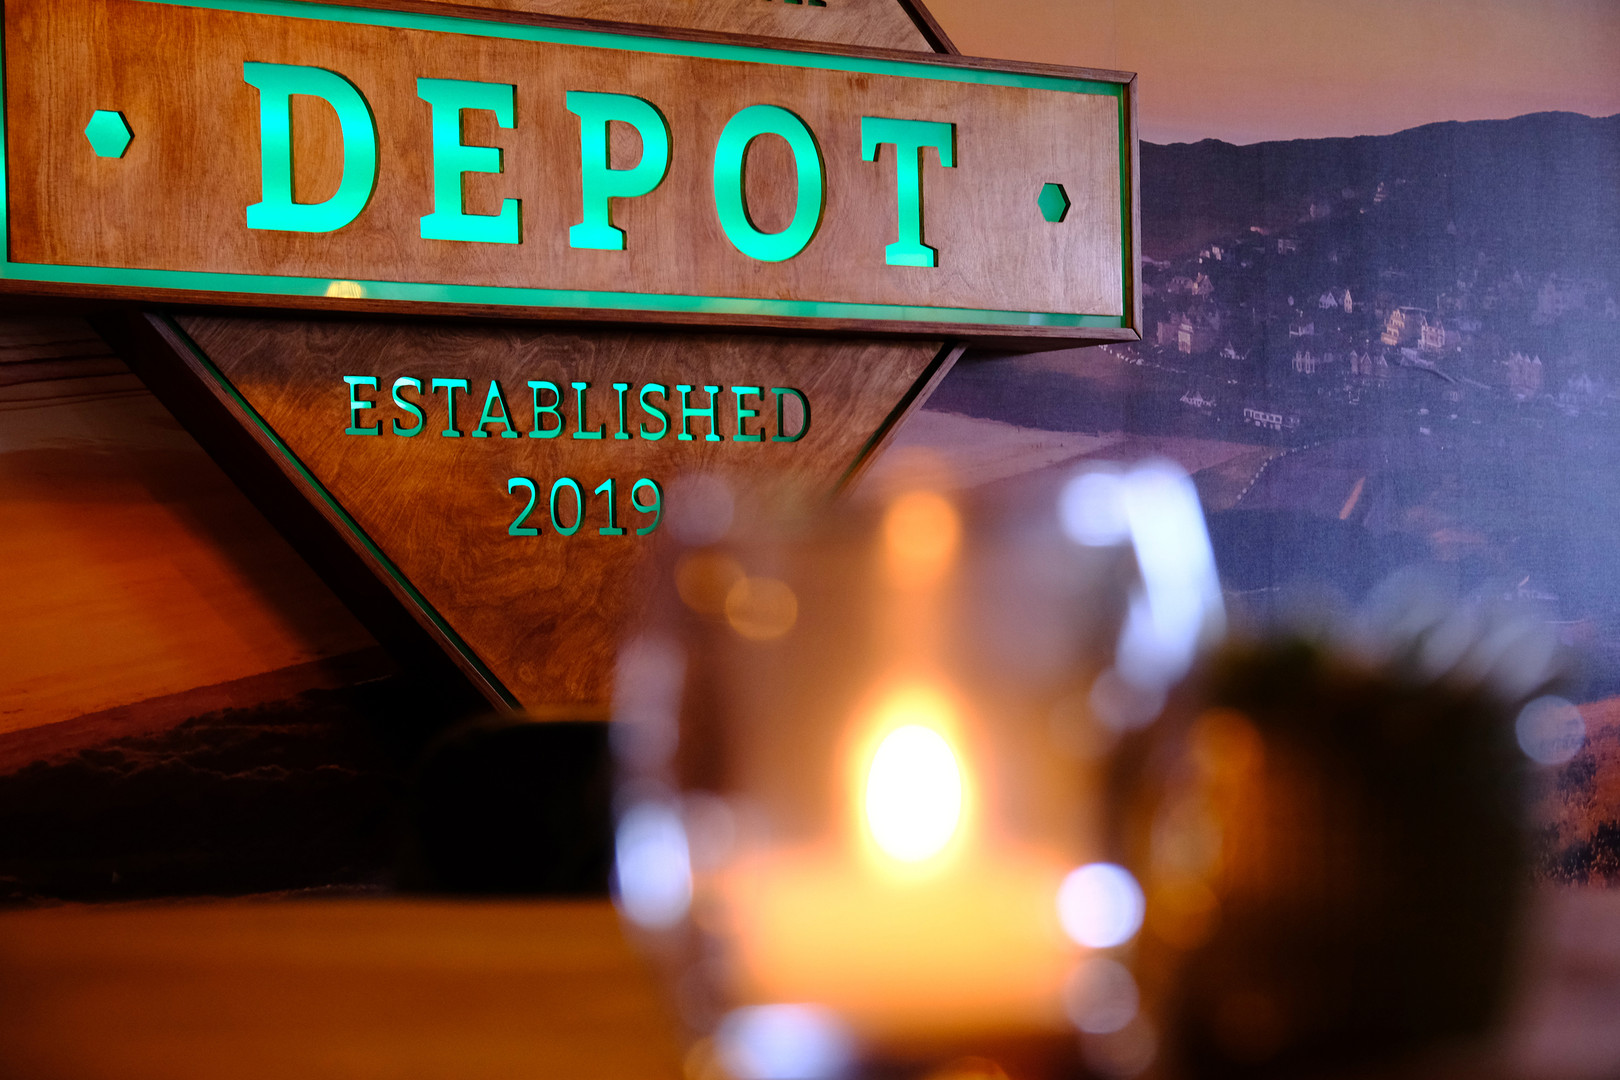 DEPOT SIGN CLOSE UP.jpg